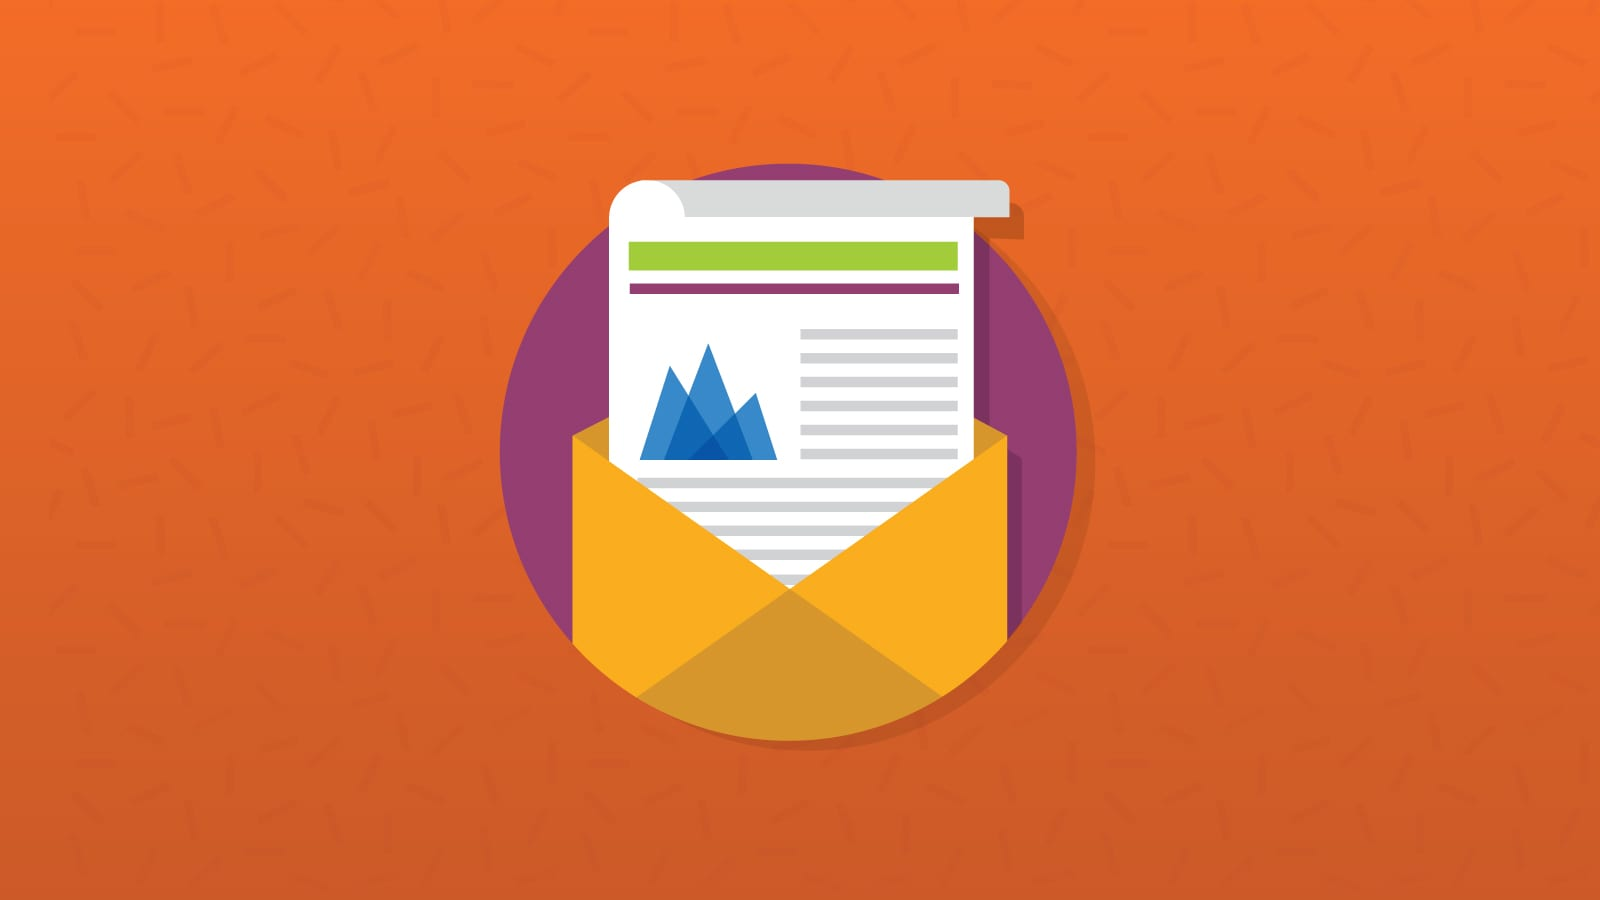 Email newsletter mistakes marketers should avoid